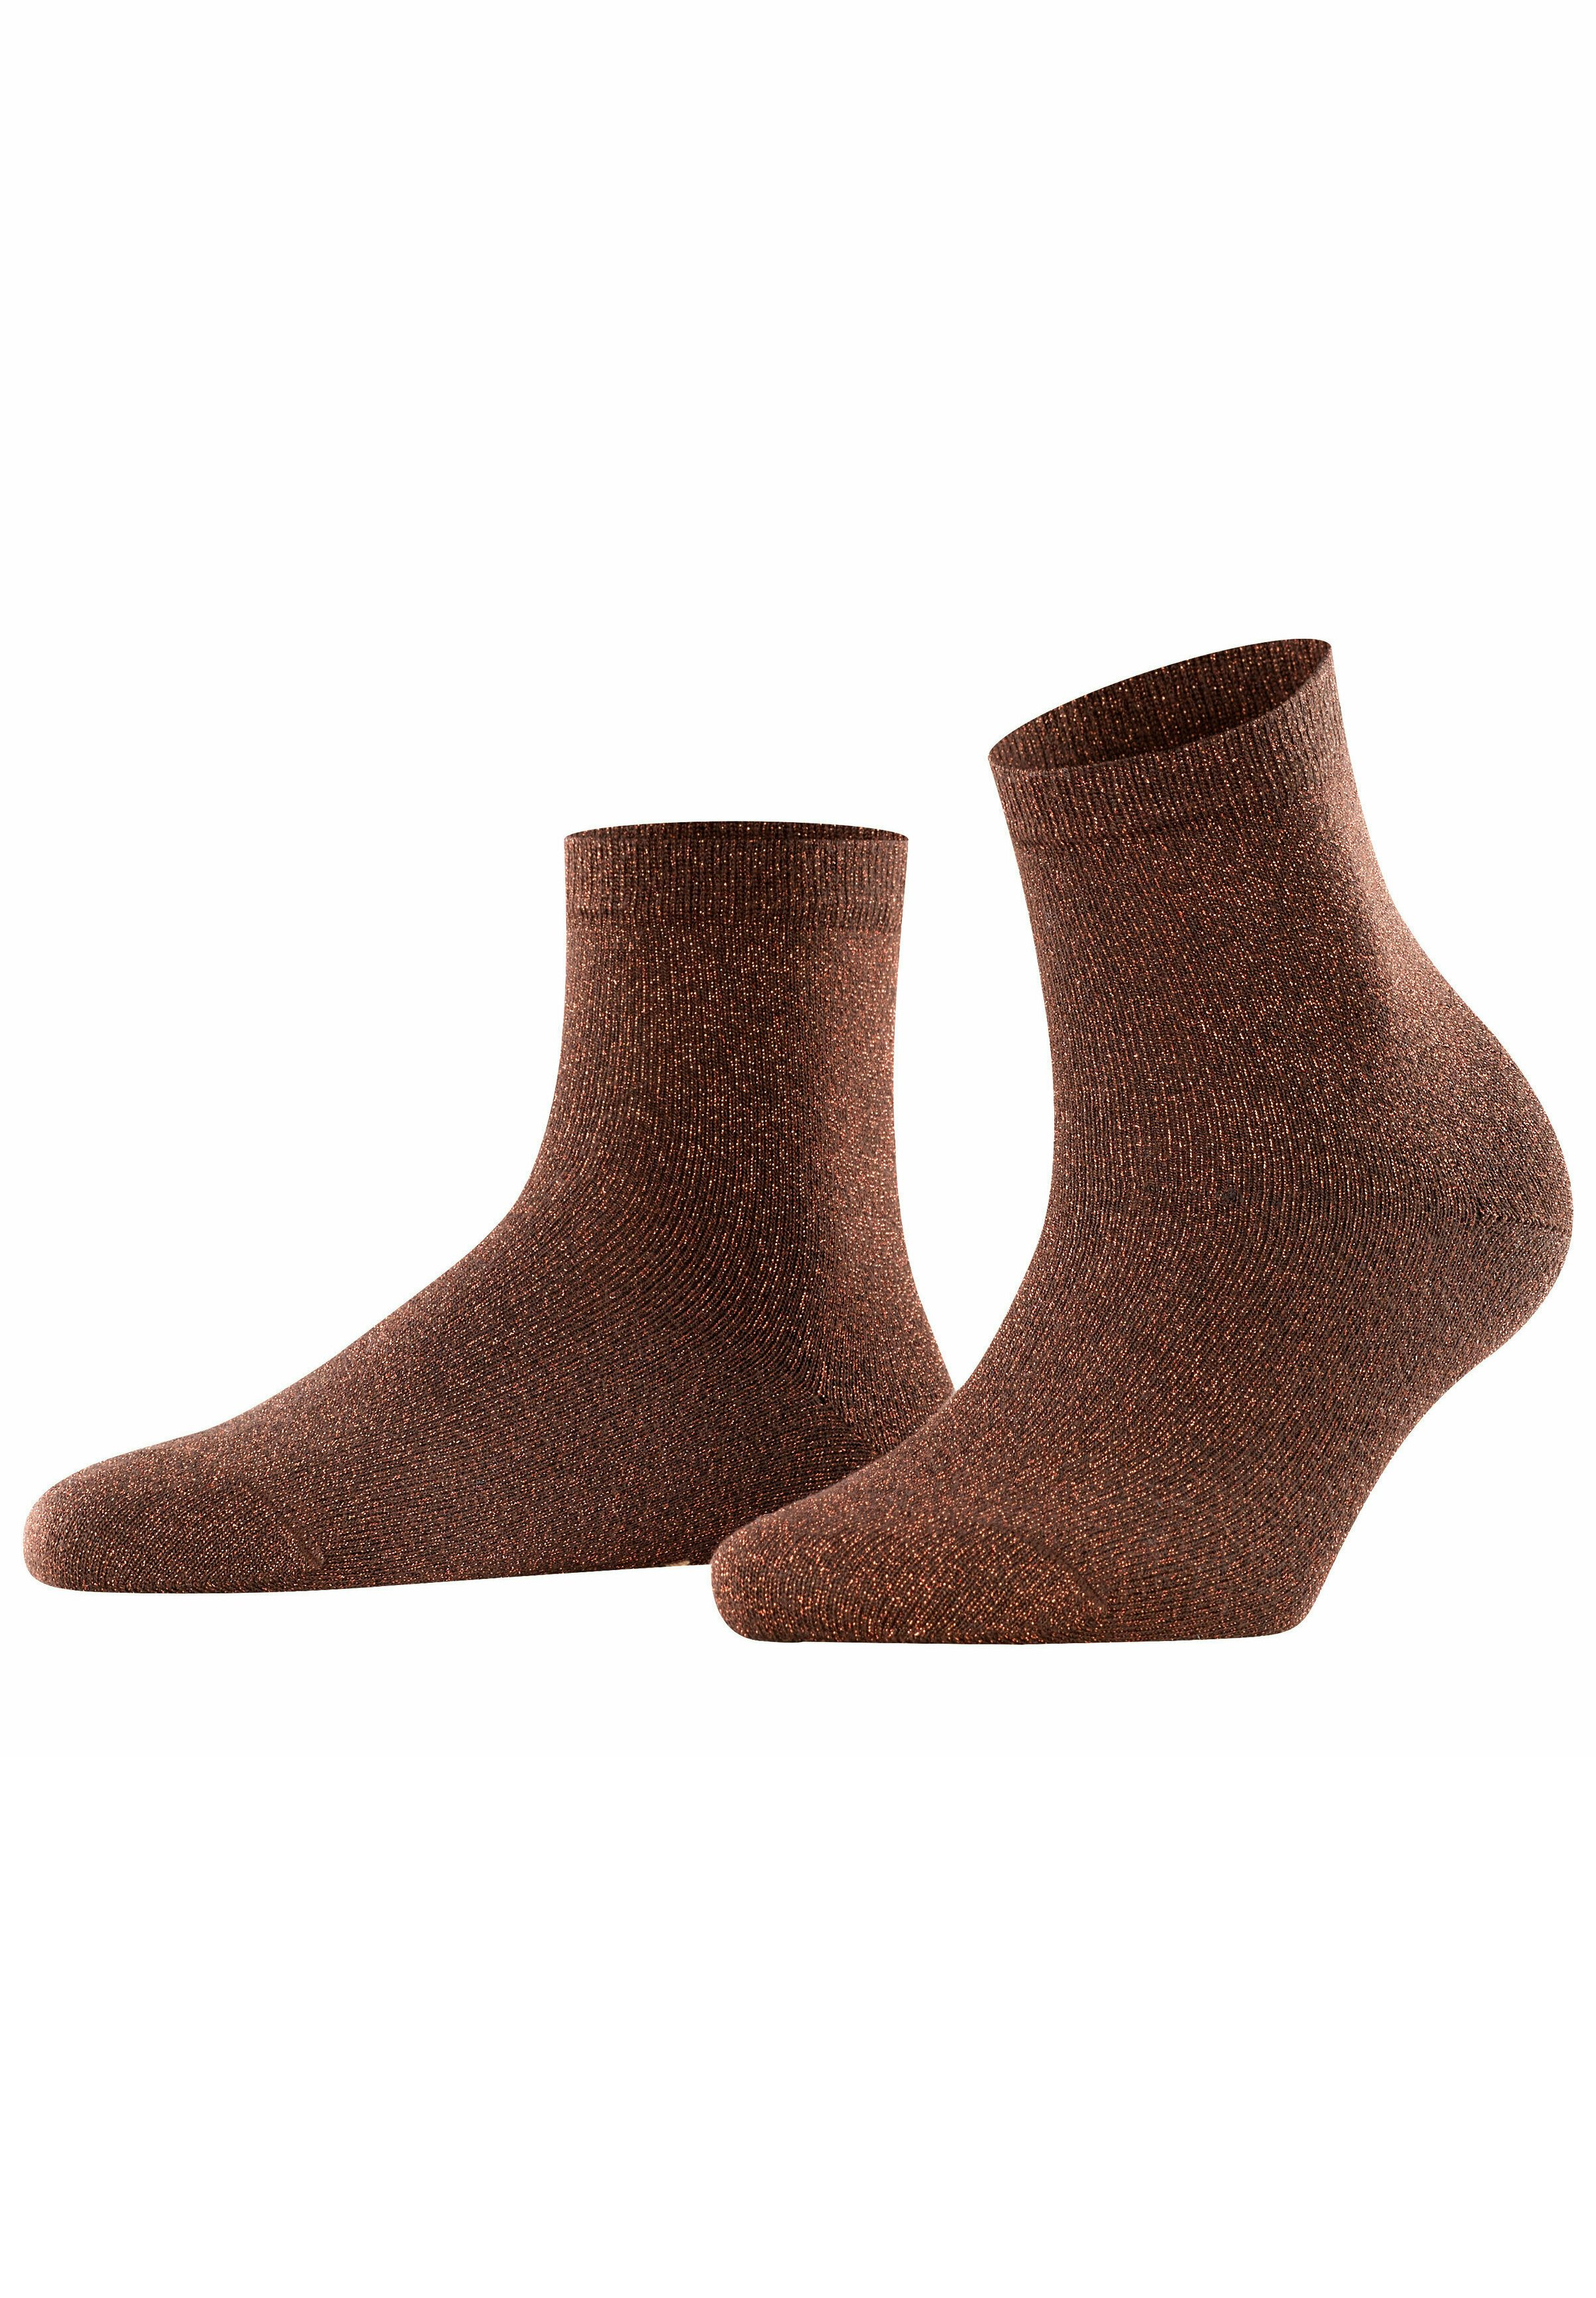 Femme LADYWELL - Chaussettes